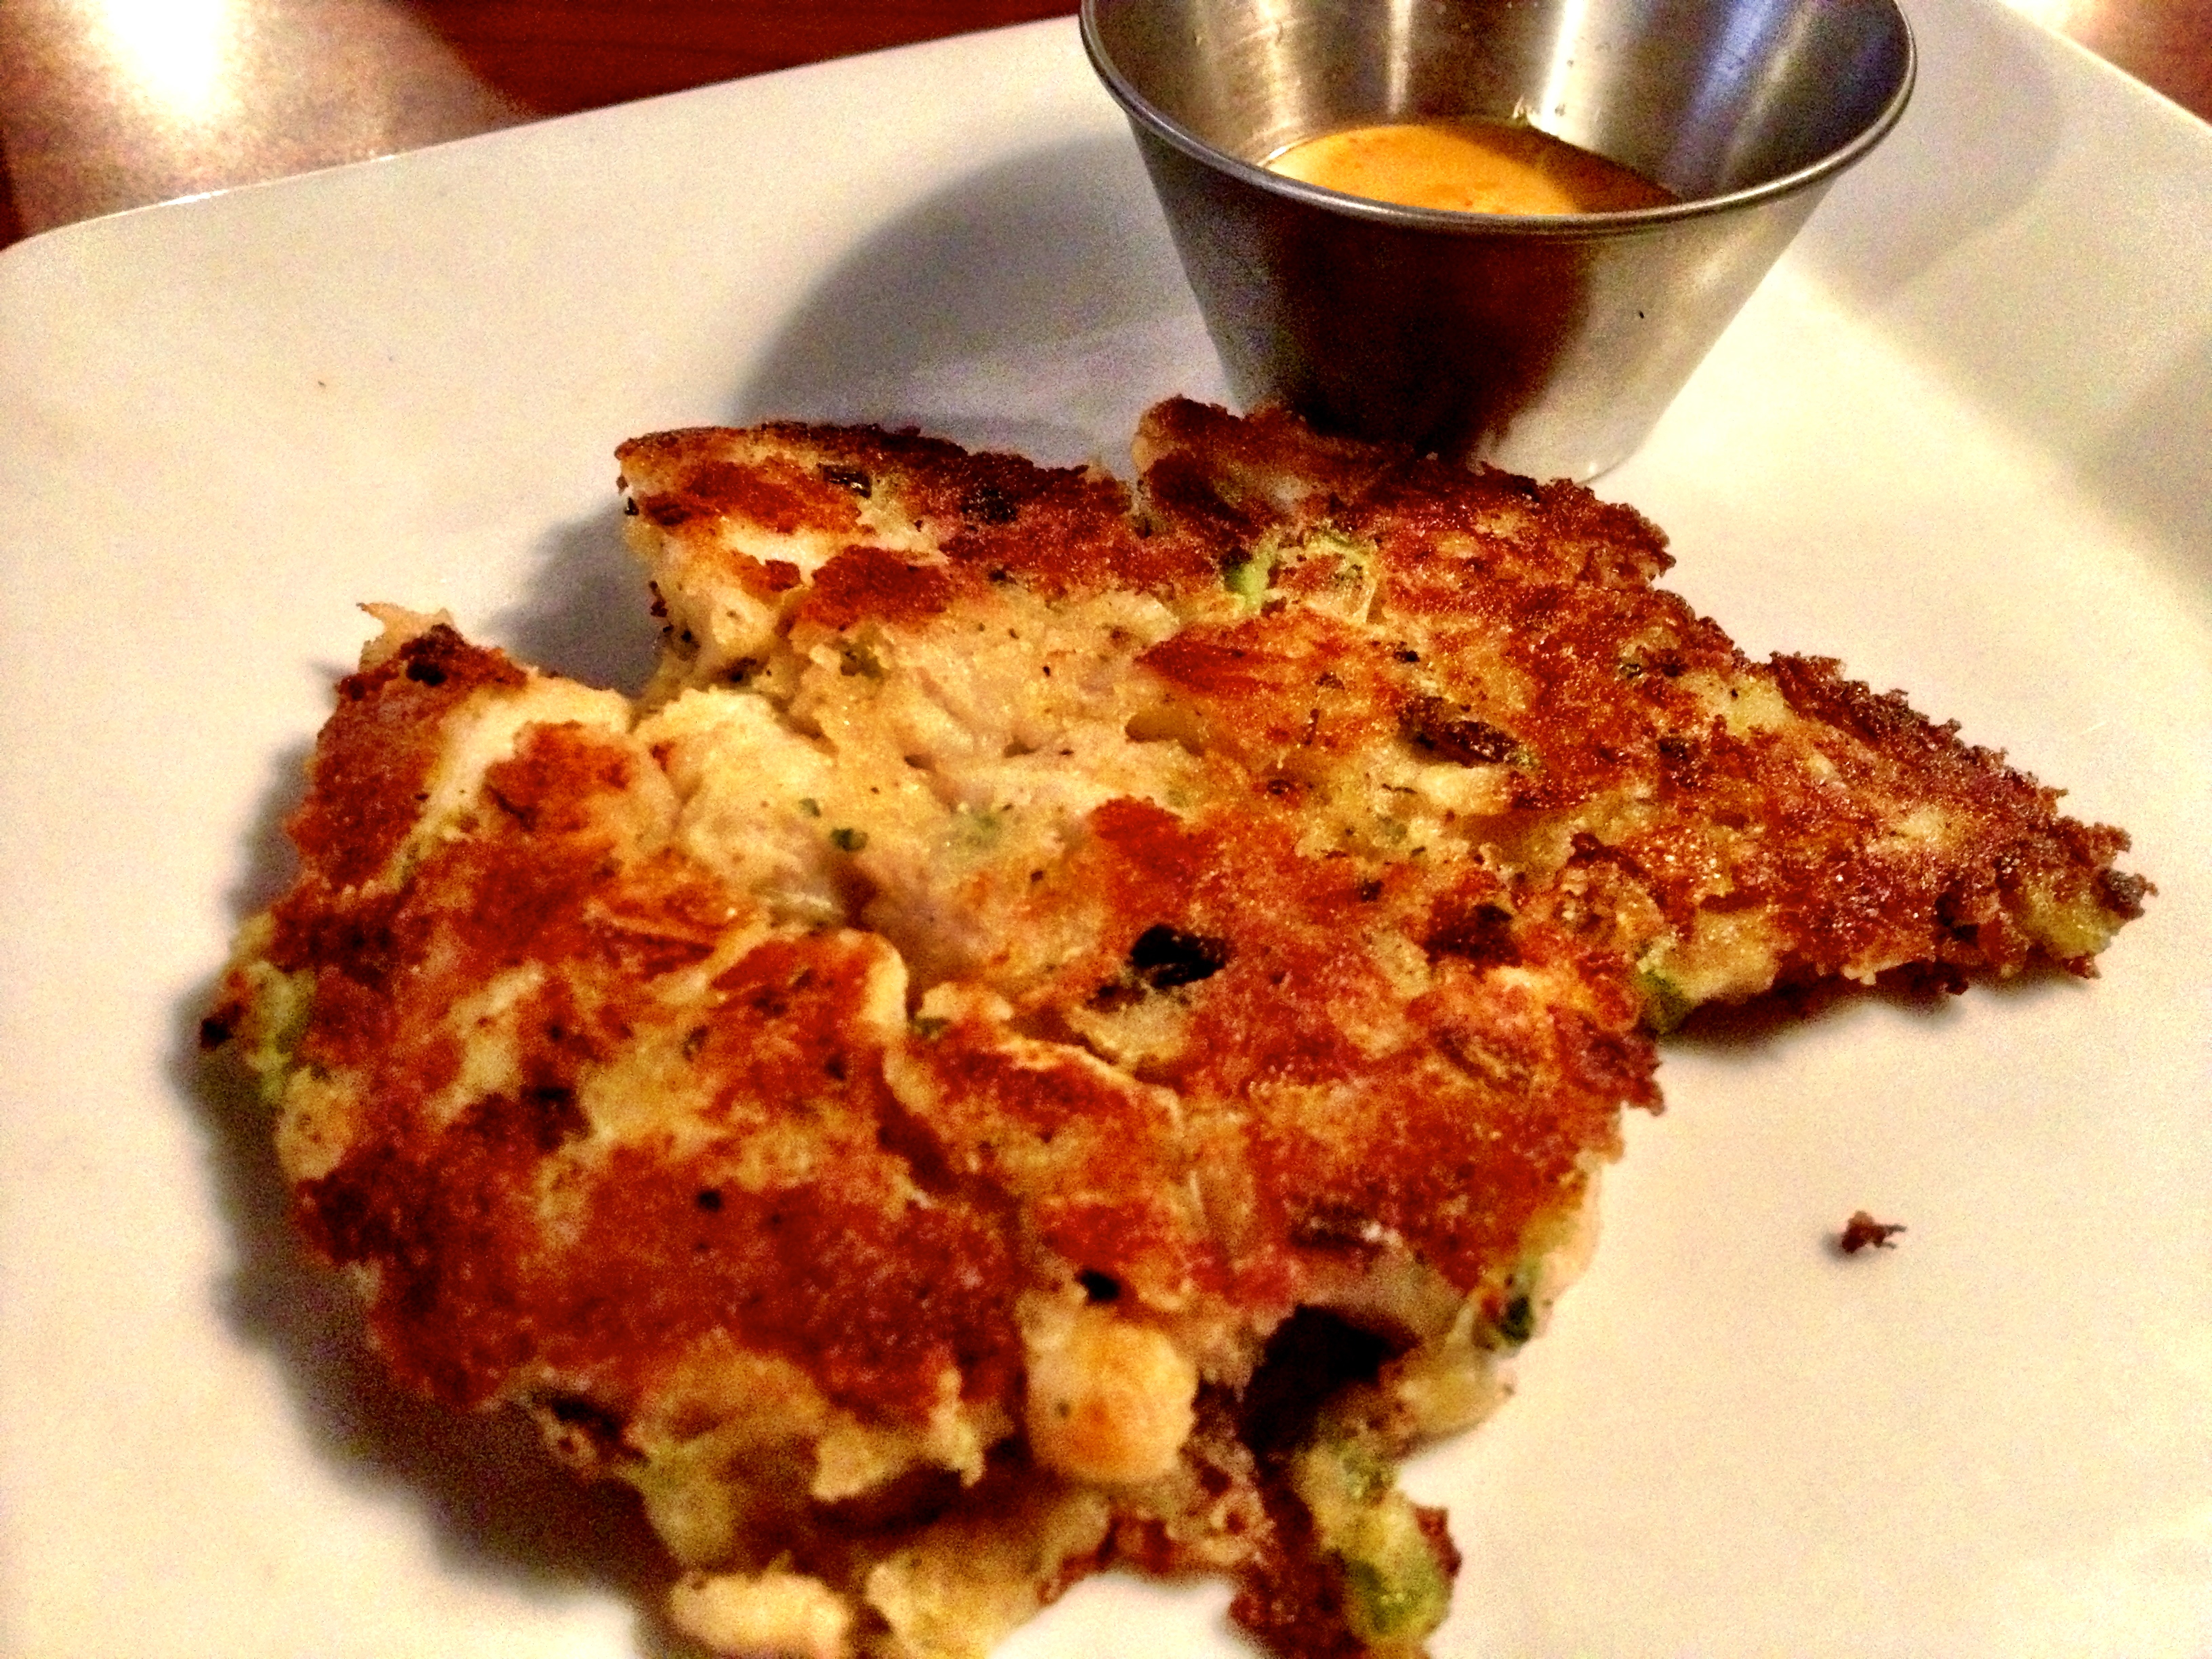 Ruby tuesday recipe for crab cakes